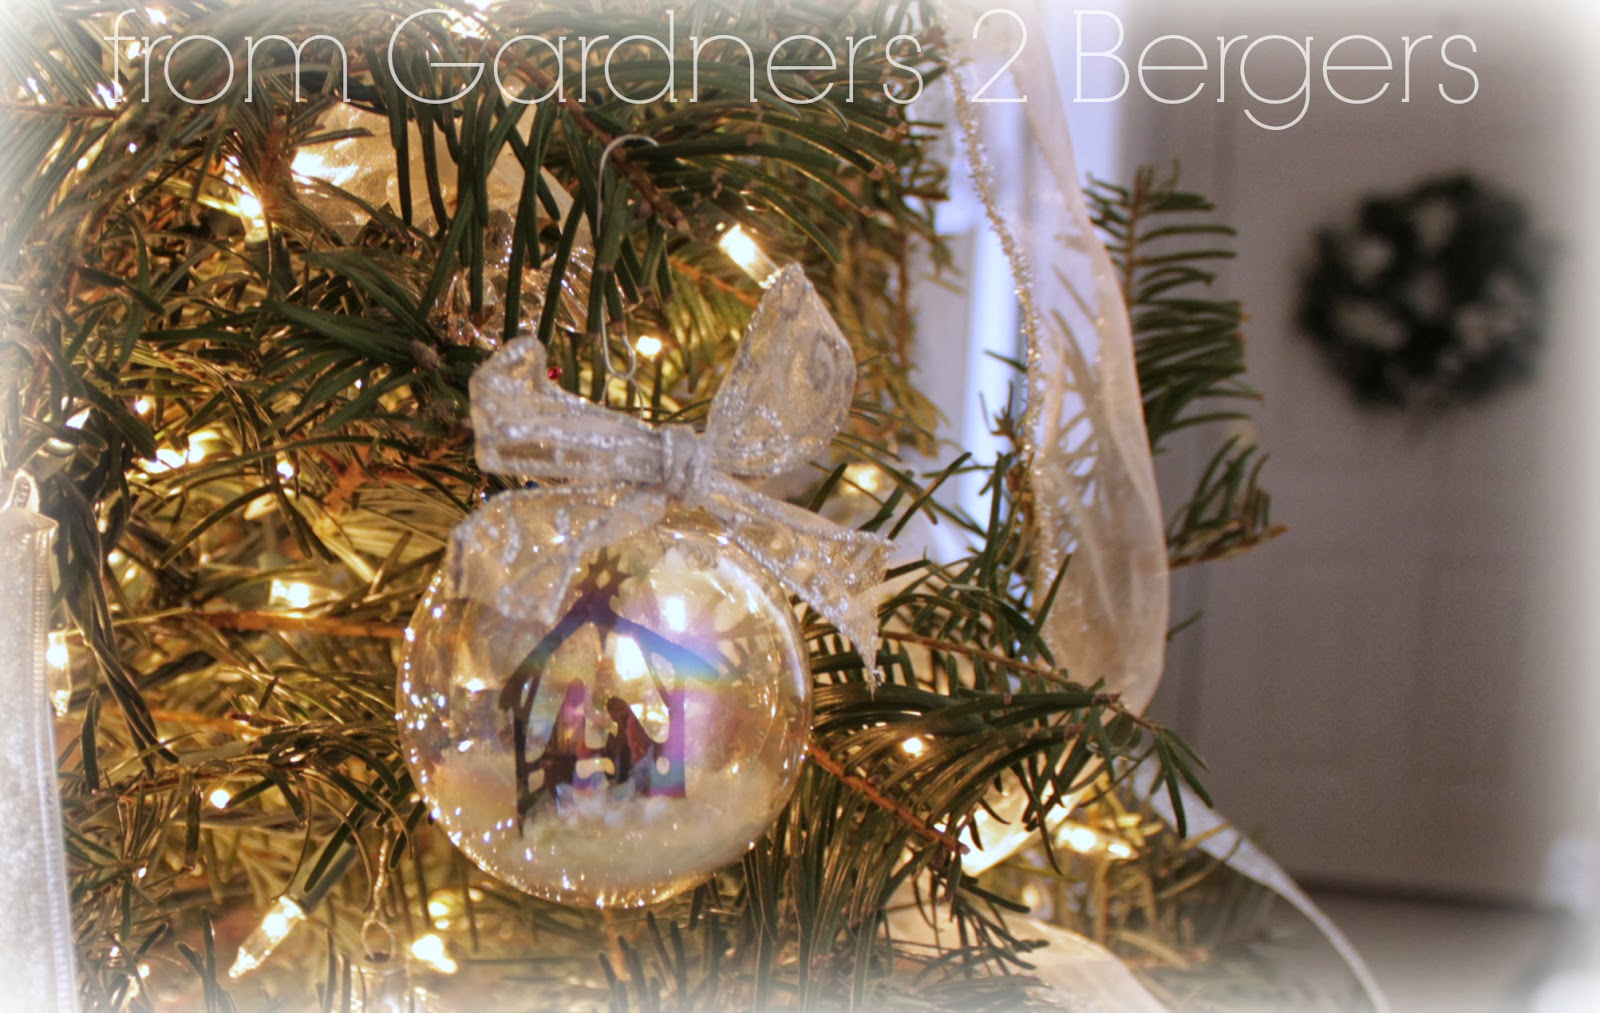 from gardners 2 bergers diy nativity scene glass ornament